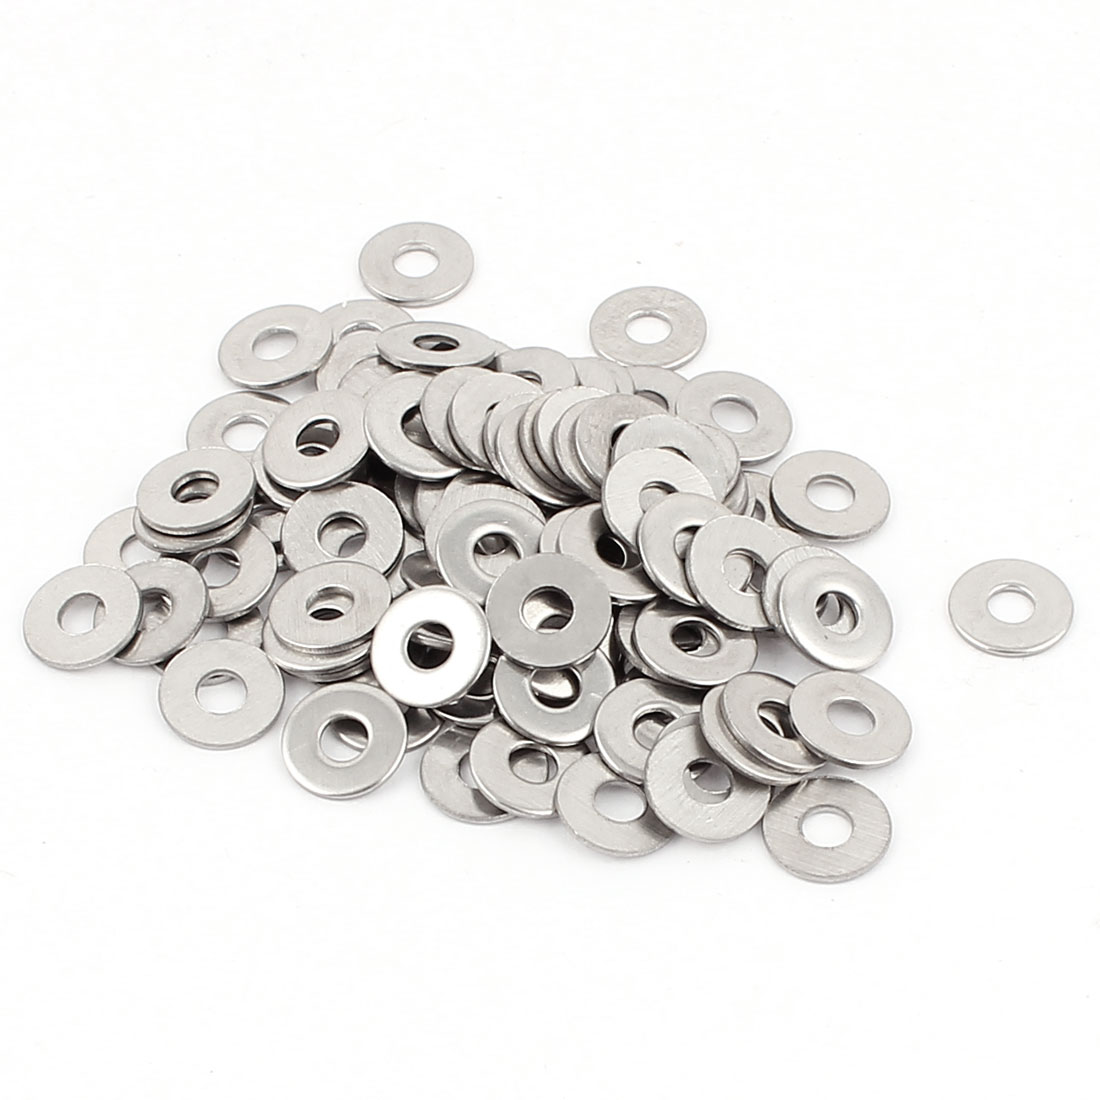 M3 3mm Metric 304 Stainless Steel Flat Washer Gaskets 100pcs